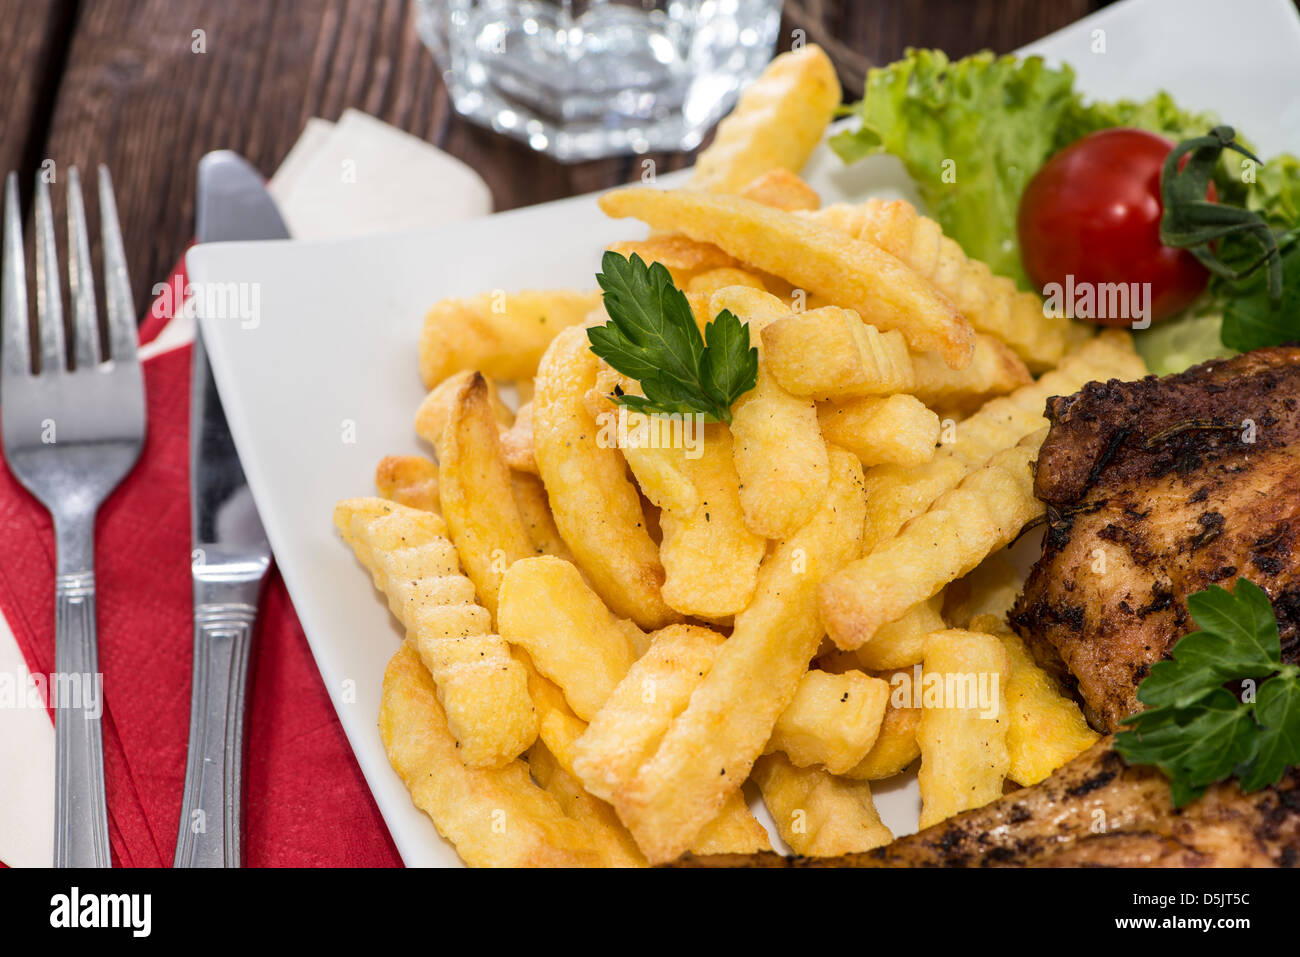 Grilled Chicken with french fries on a plate - Stock Image